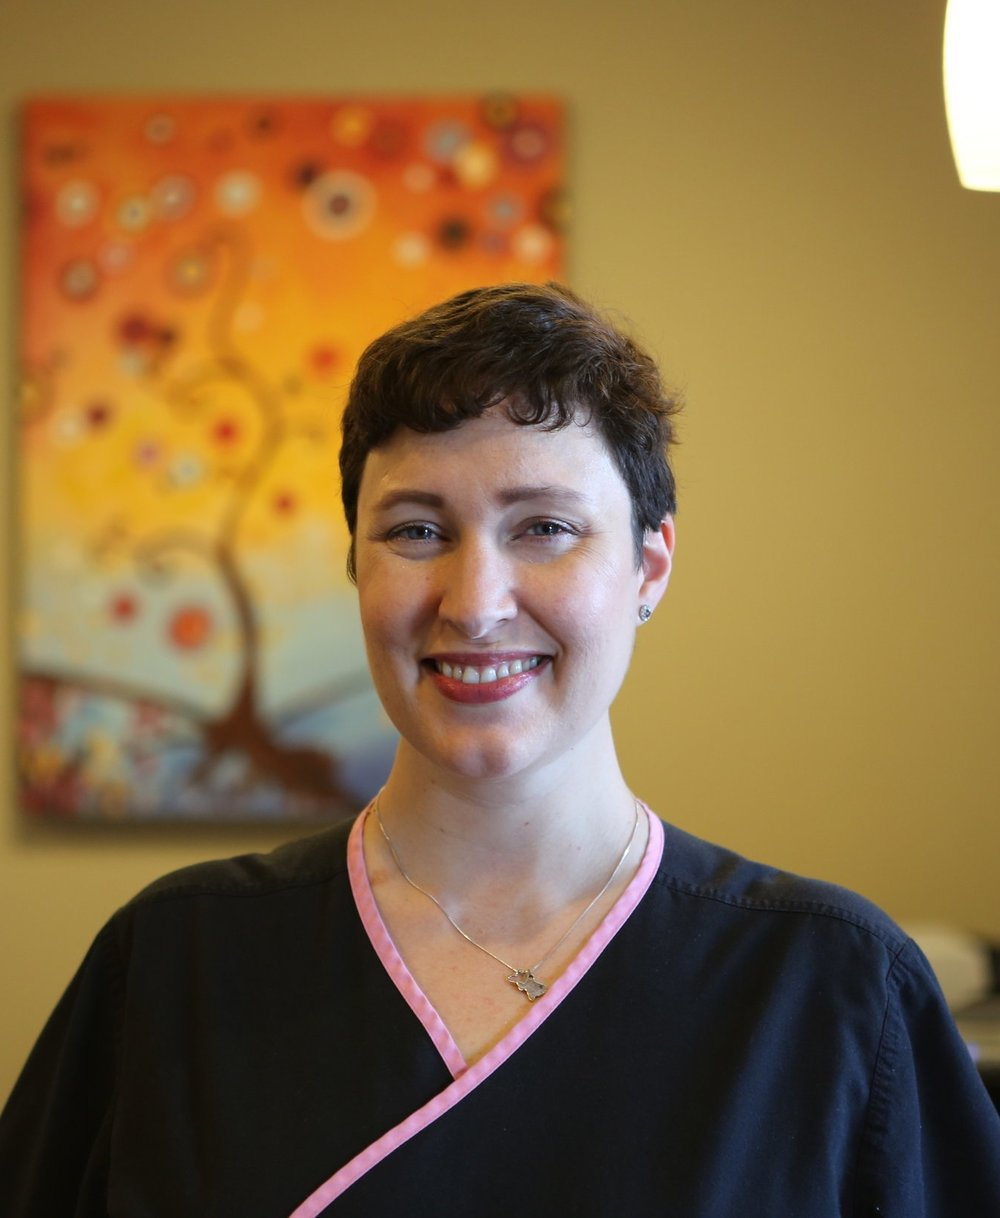 Elizabeth - Liz graduated from Baylor College of Dentistry in 2009 with a Bachelors of Science in Dental Hygiene. She prides herself on making patients feel comfortable and providing gentle and thorough care.Liz enjoys dancing with her husband, playing with her three dogs and spending time with her son.